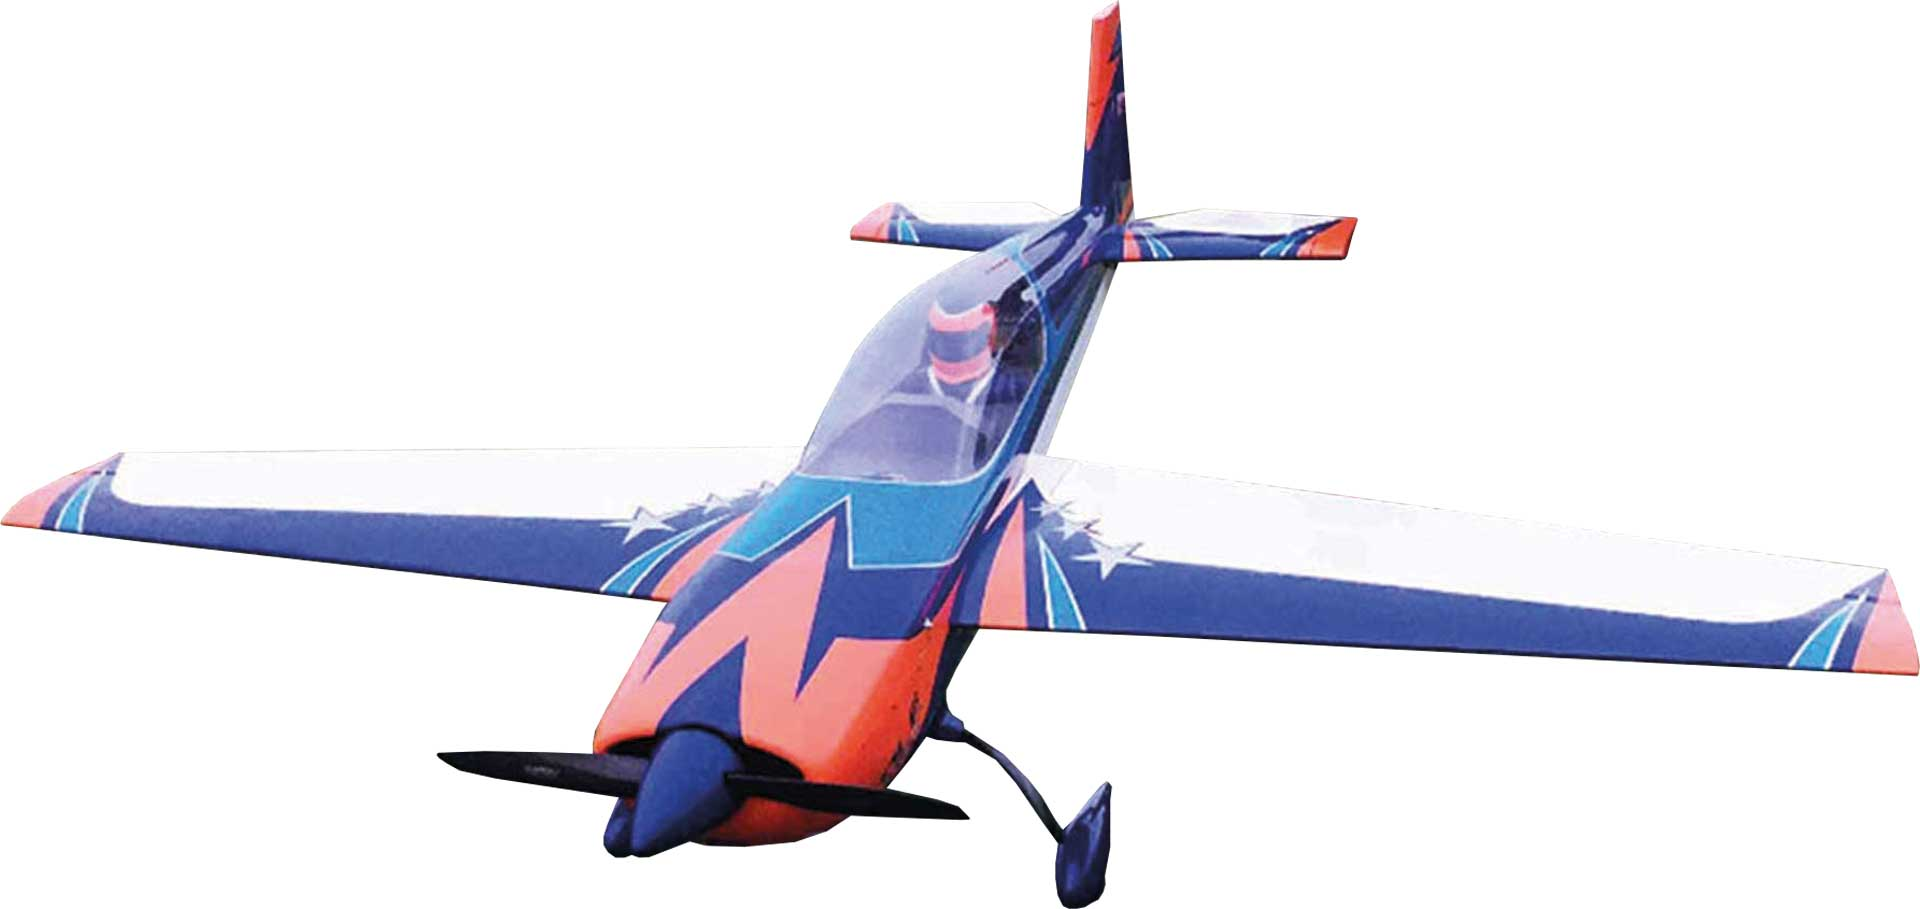 """EXTREMEFLIGHT-RC EXTRA 300 V4 125"""" ORANGE / BLUE / WHITE 4-CYLINDER VERSION ONLY ON SPECIAL REQUEST! LONGER DELIVERY TIME!!!!"""